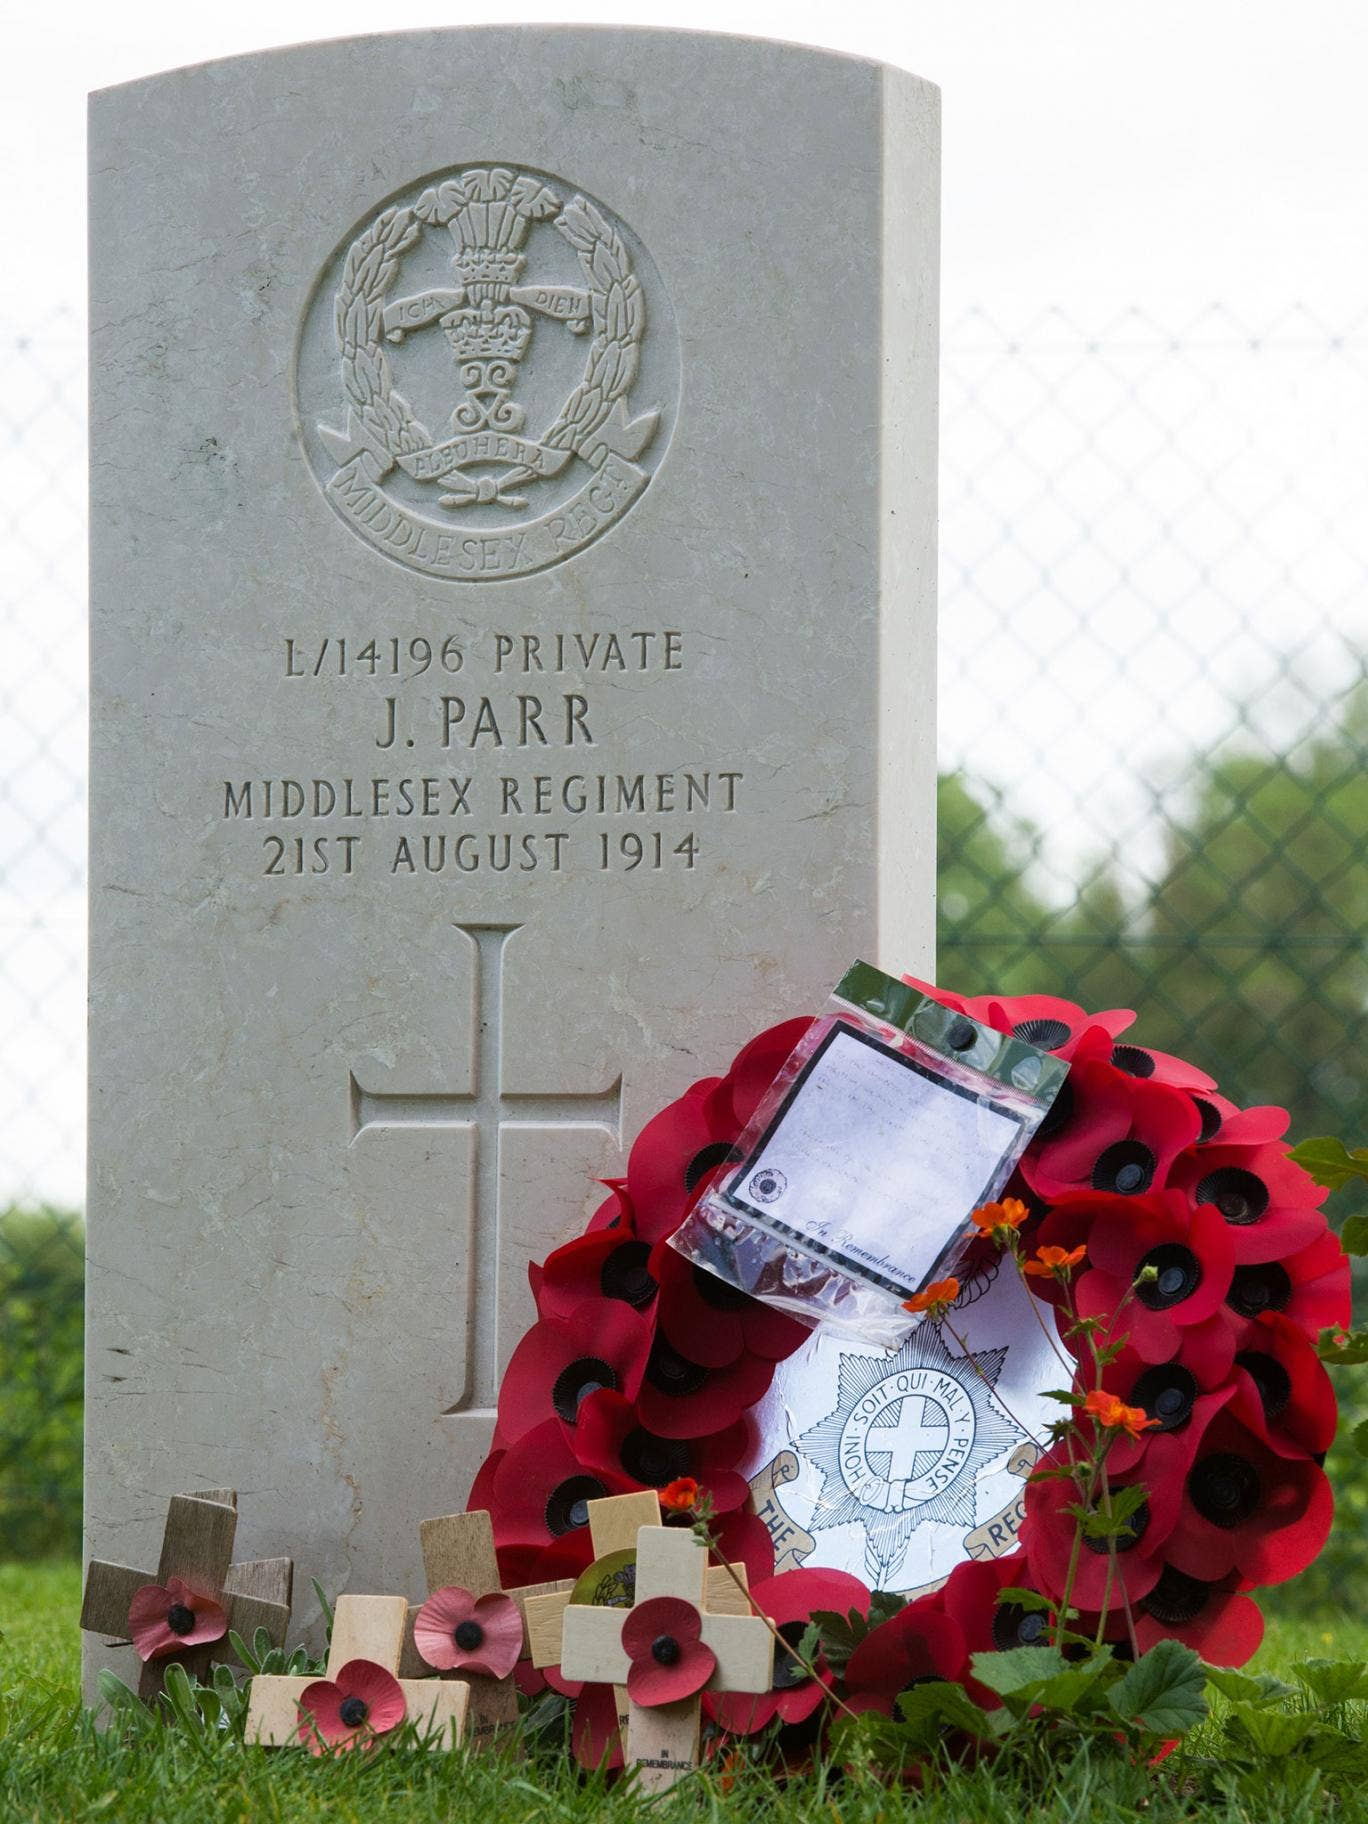 The grave in Saint Symphorien cemetery of Private John Parr, the first British soldier to be killed in action on the Western Front